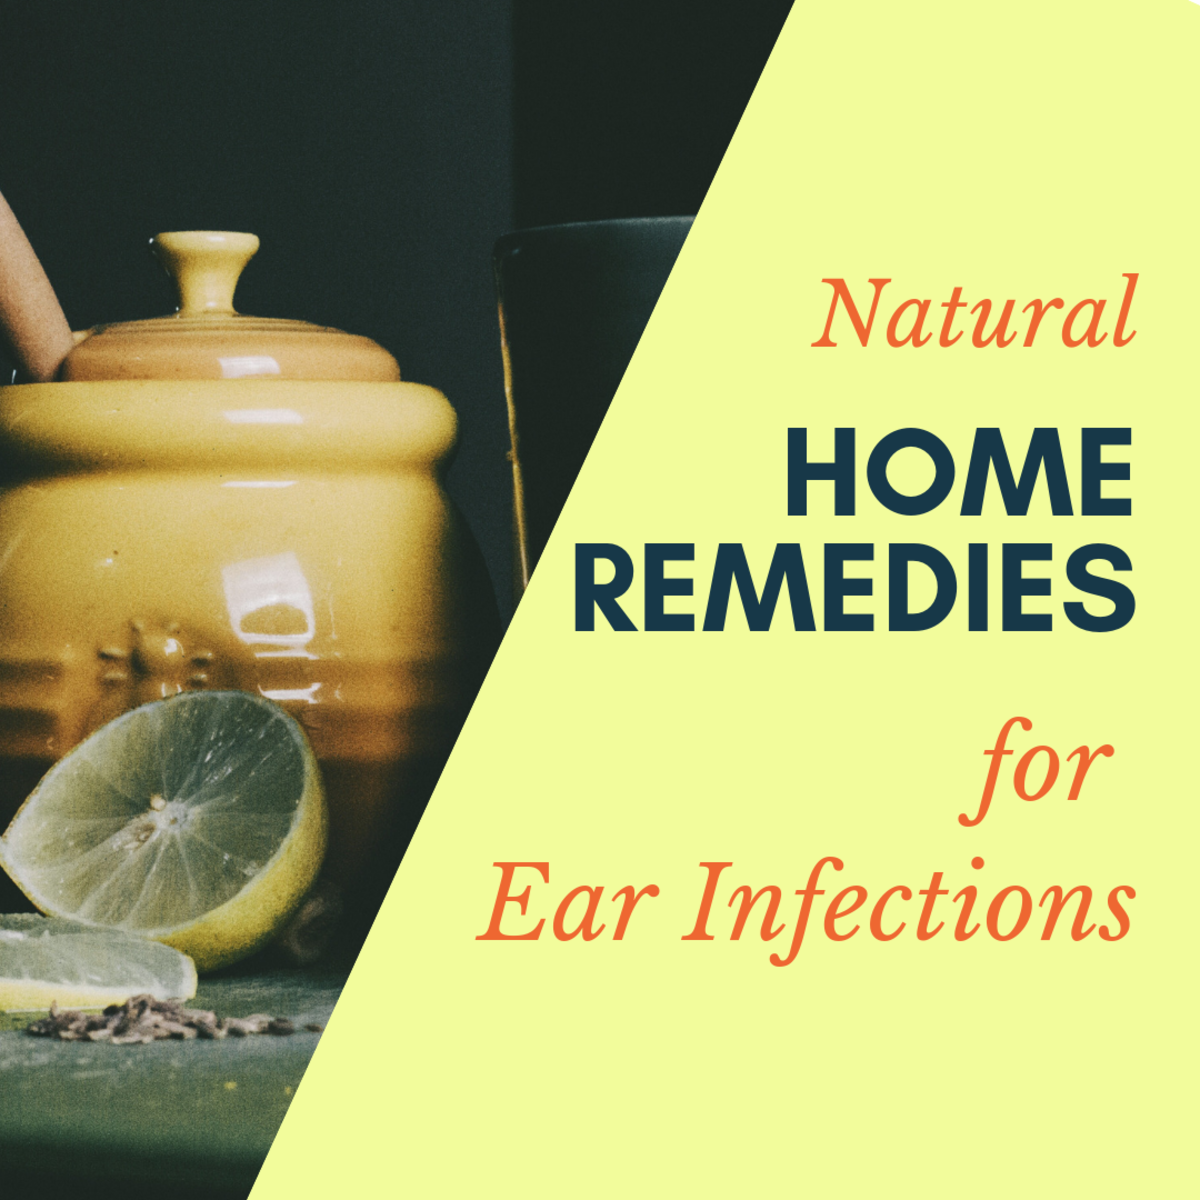 Sweet Oil and Other Home Remedies for Painful Ear Infections